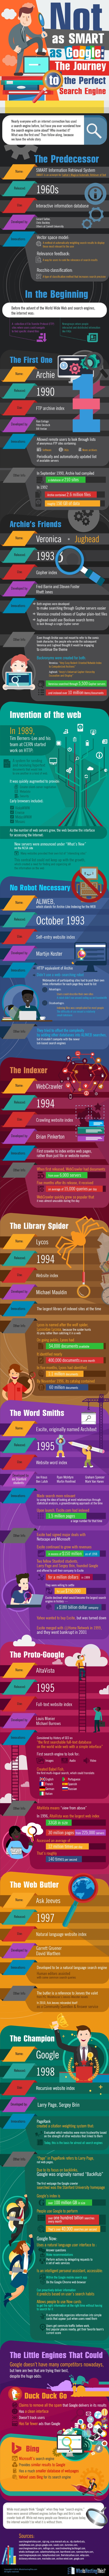 The Story Of Inventing The Perfect Search Engine - Google - Infographic